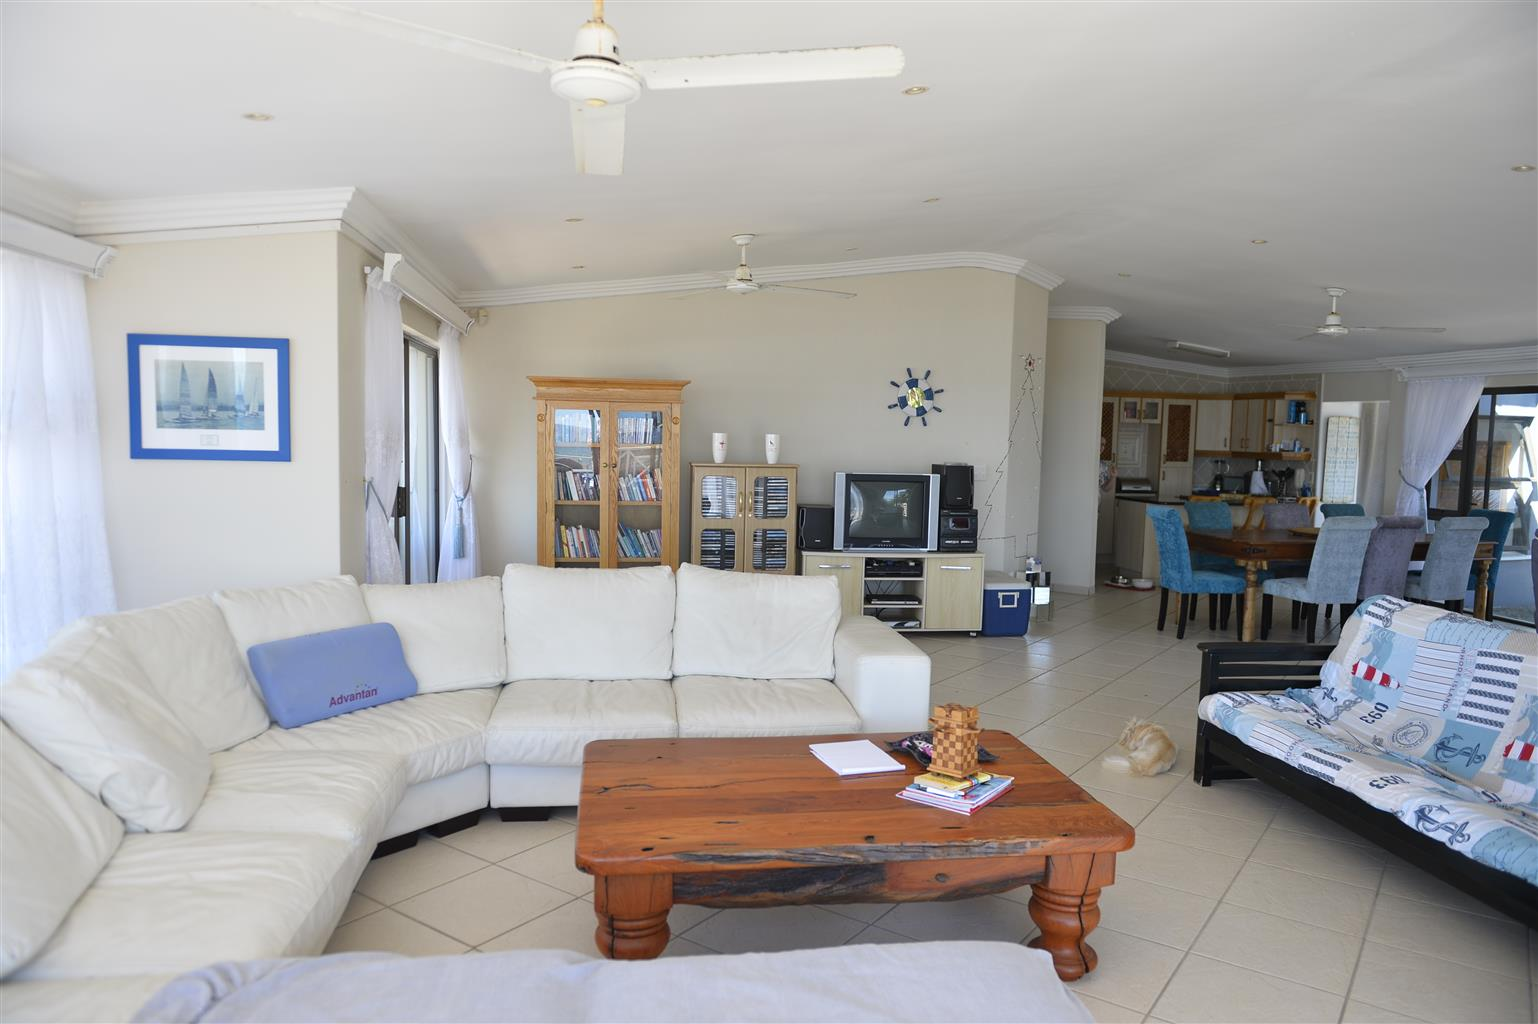 Shelly Beach Ski Boat Beach front house for sale.